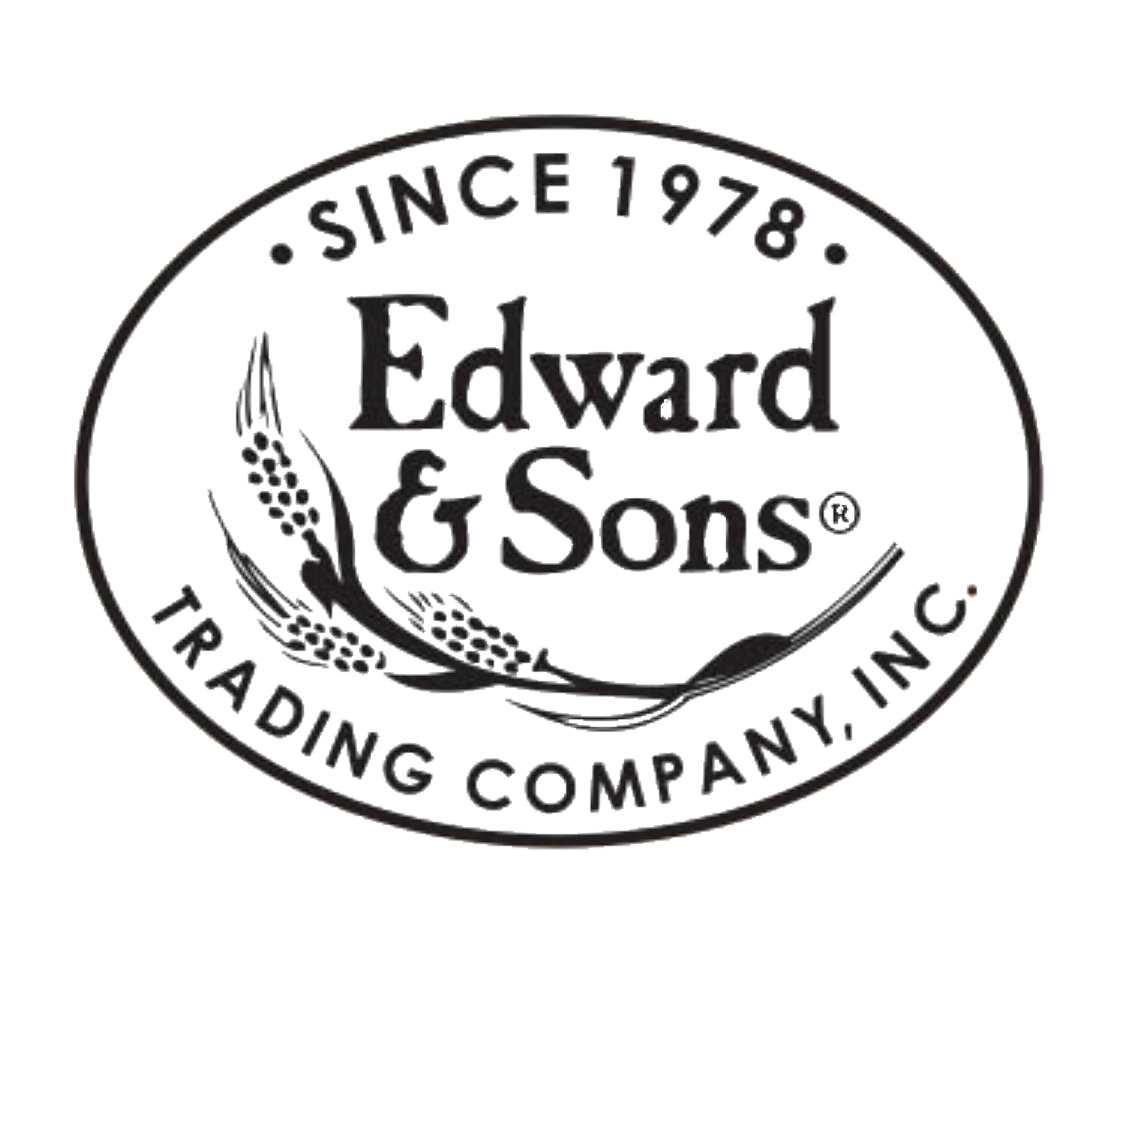 Edward and Sons.PNG